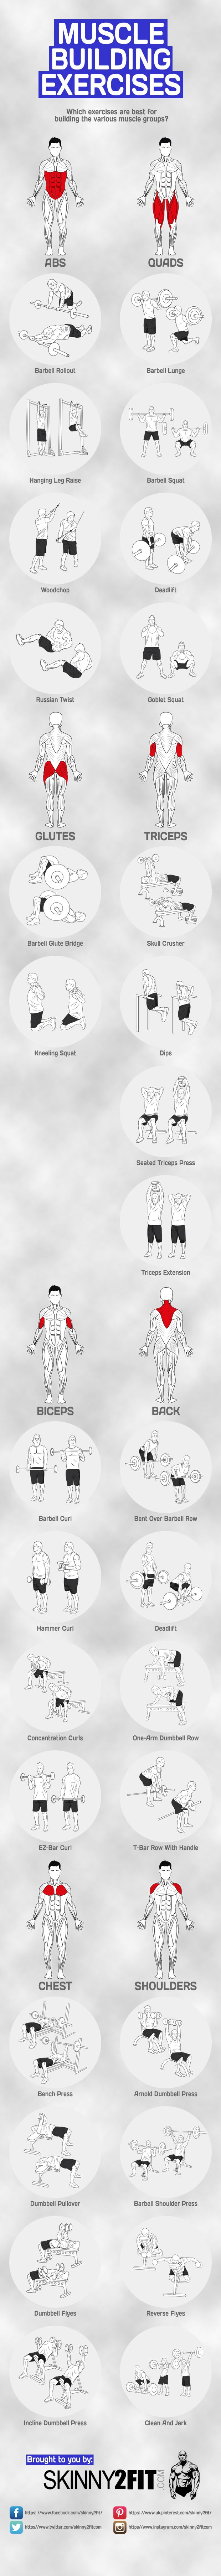 What are the top muscle building exercises for each muscle group? This graphic…